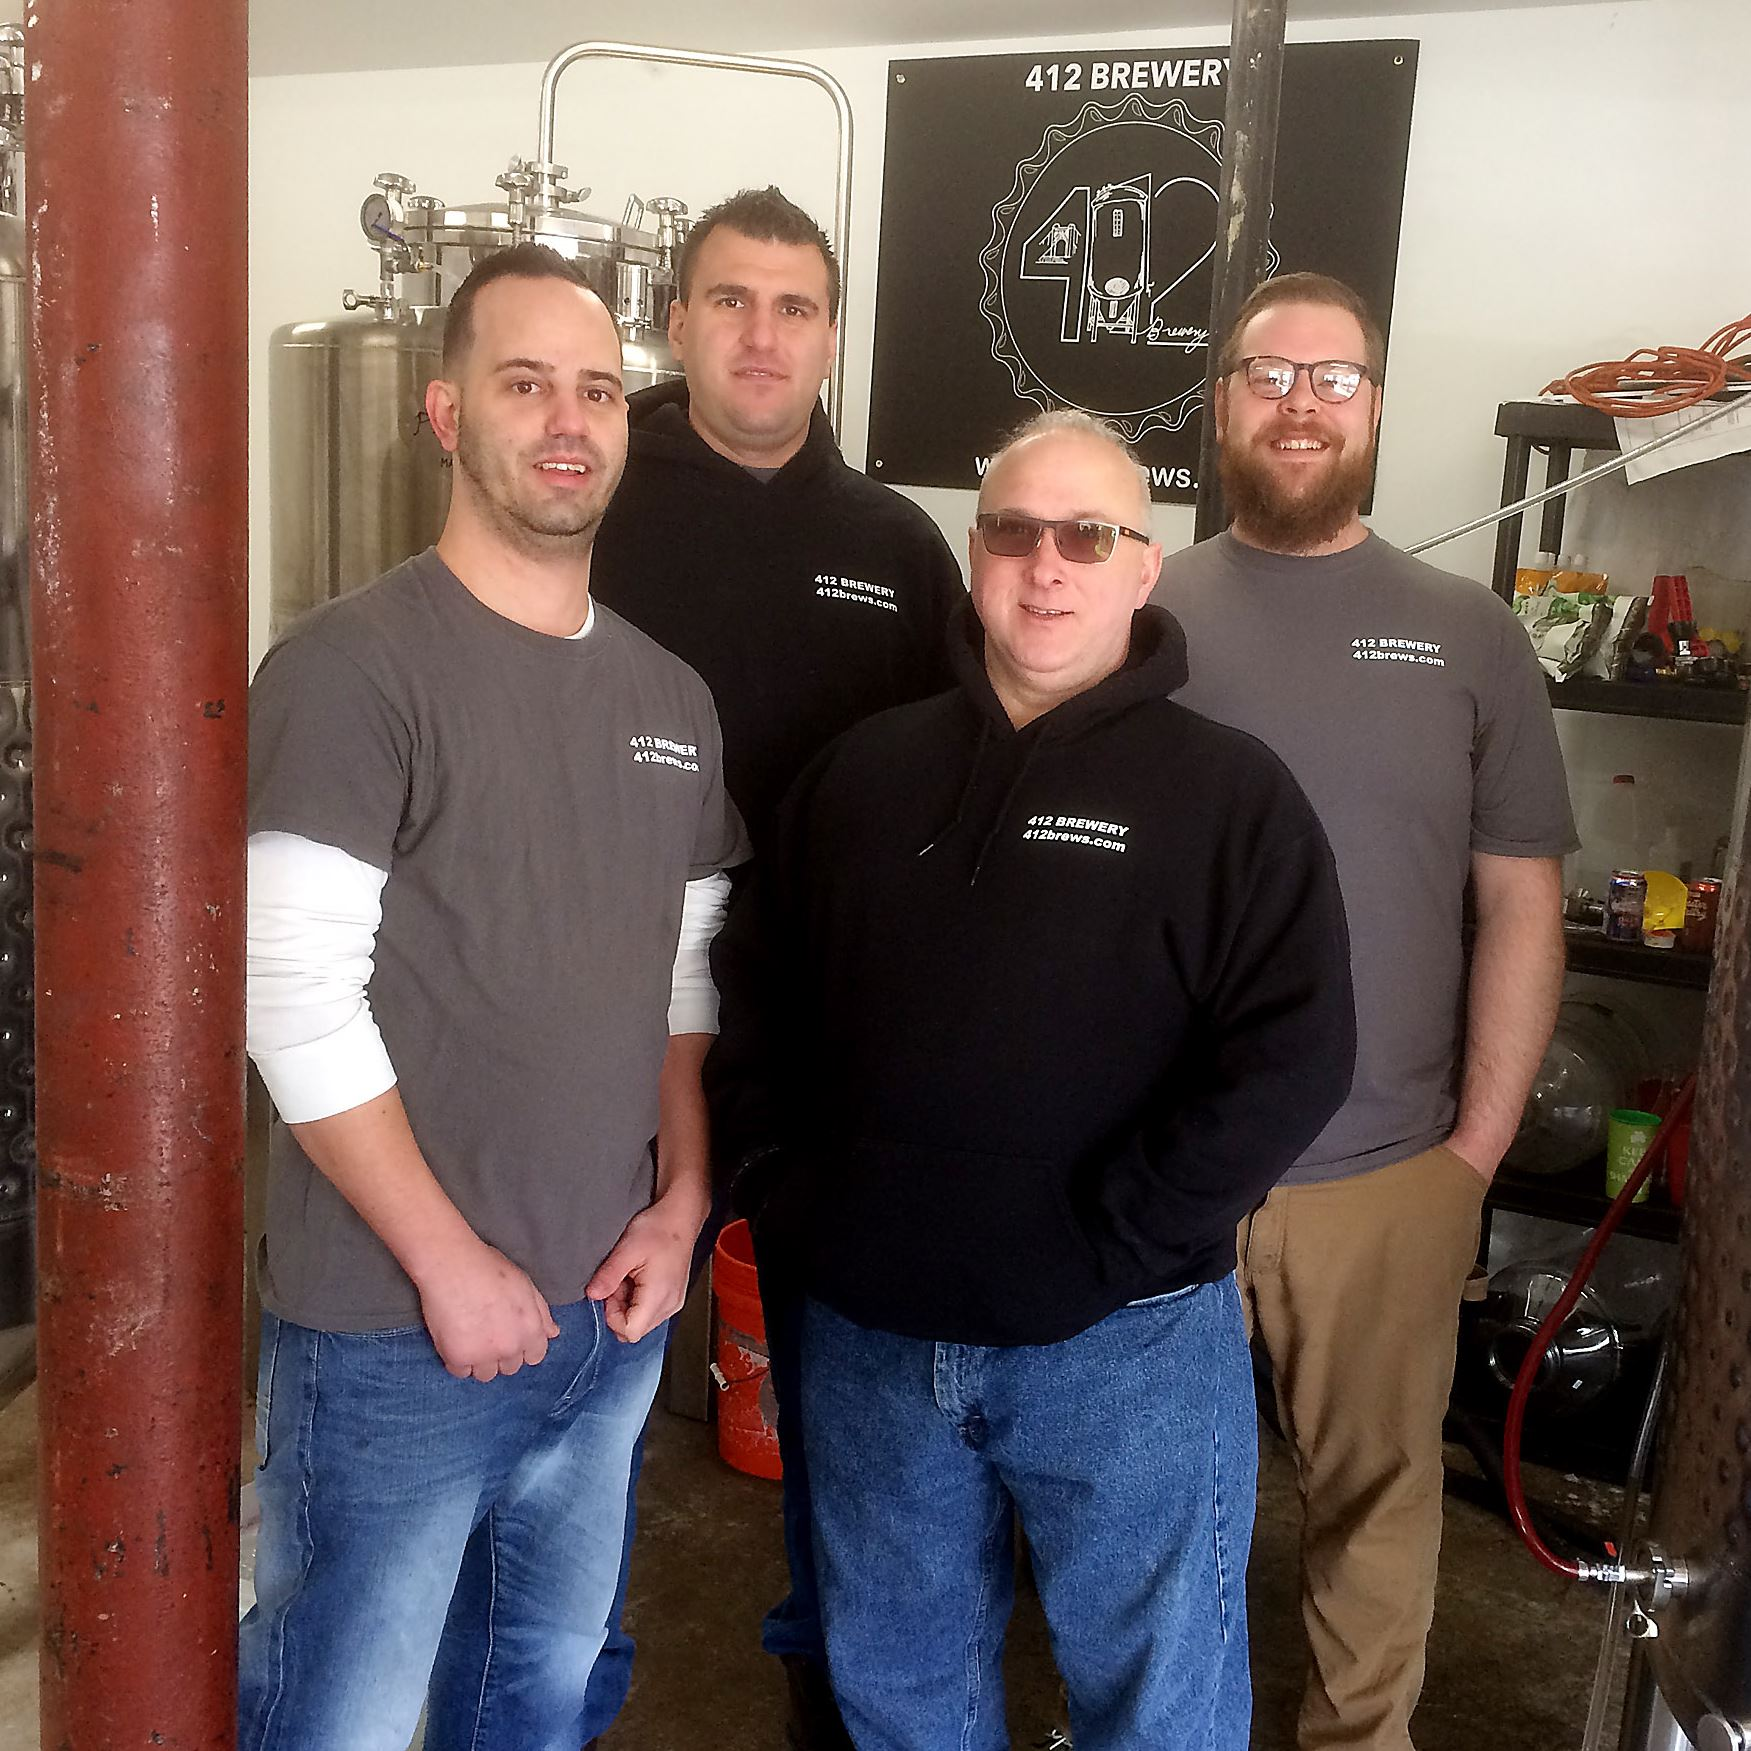 412 brewery team The team behind the new 412 Brewery in McKees Rocks: From left, Scott Davis, Sam Mure, Ed Wojtaszek and Adam Crabtree. They will be pouring samples of their first two beers at the Pittsburgh Winter Beerfest.